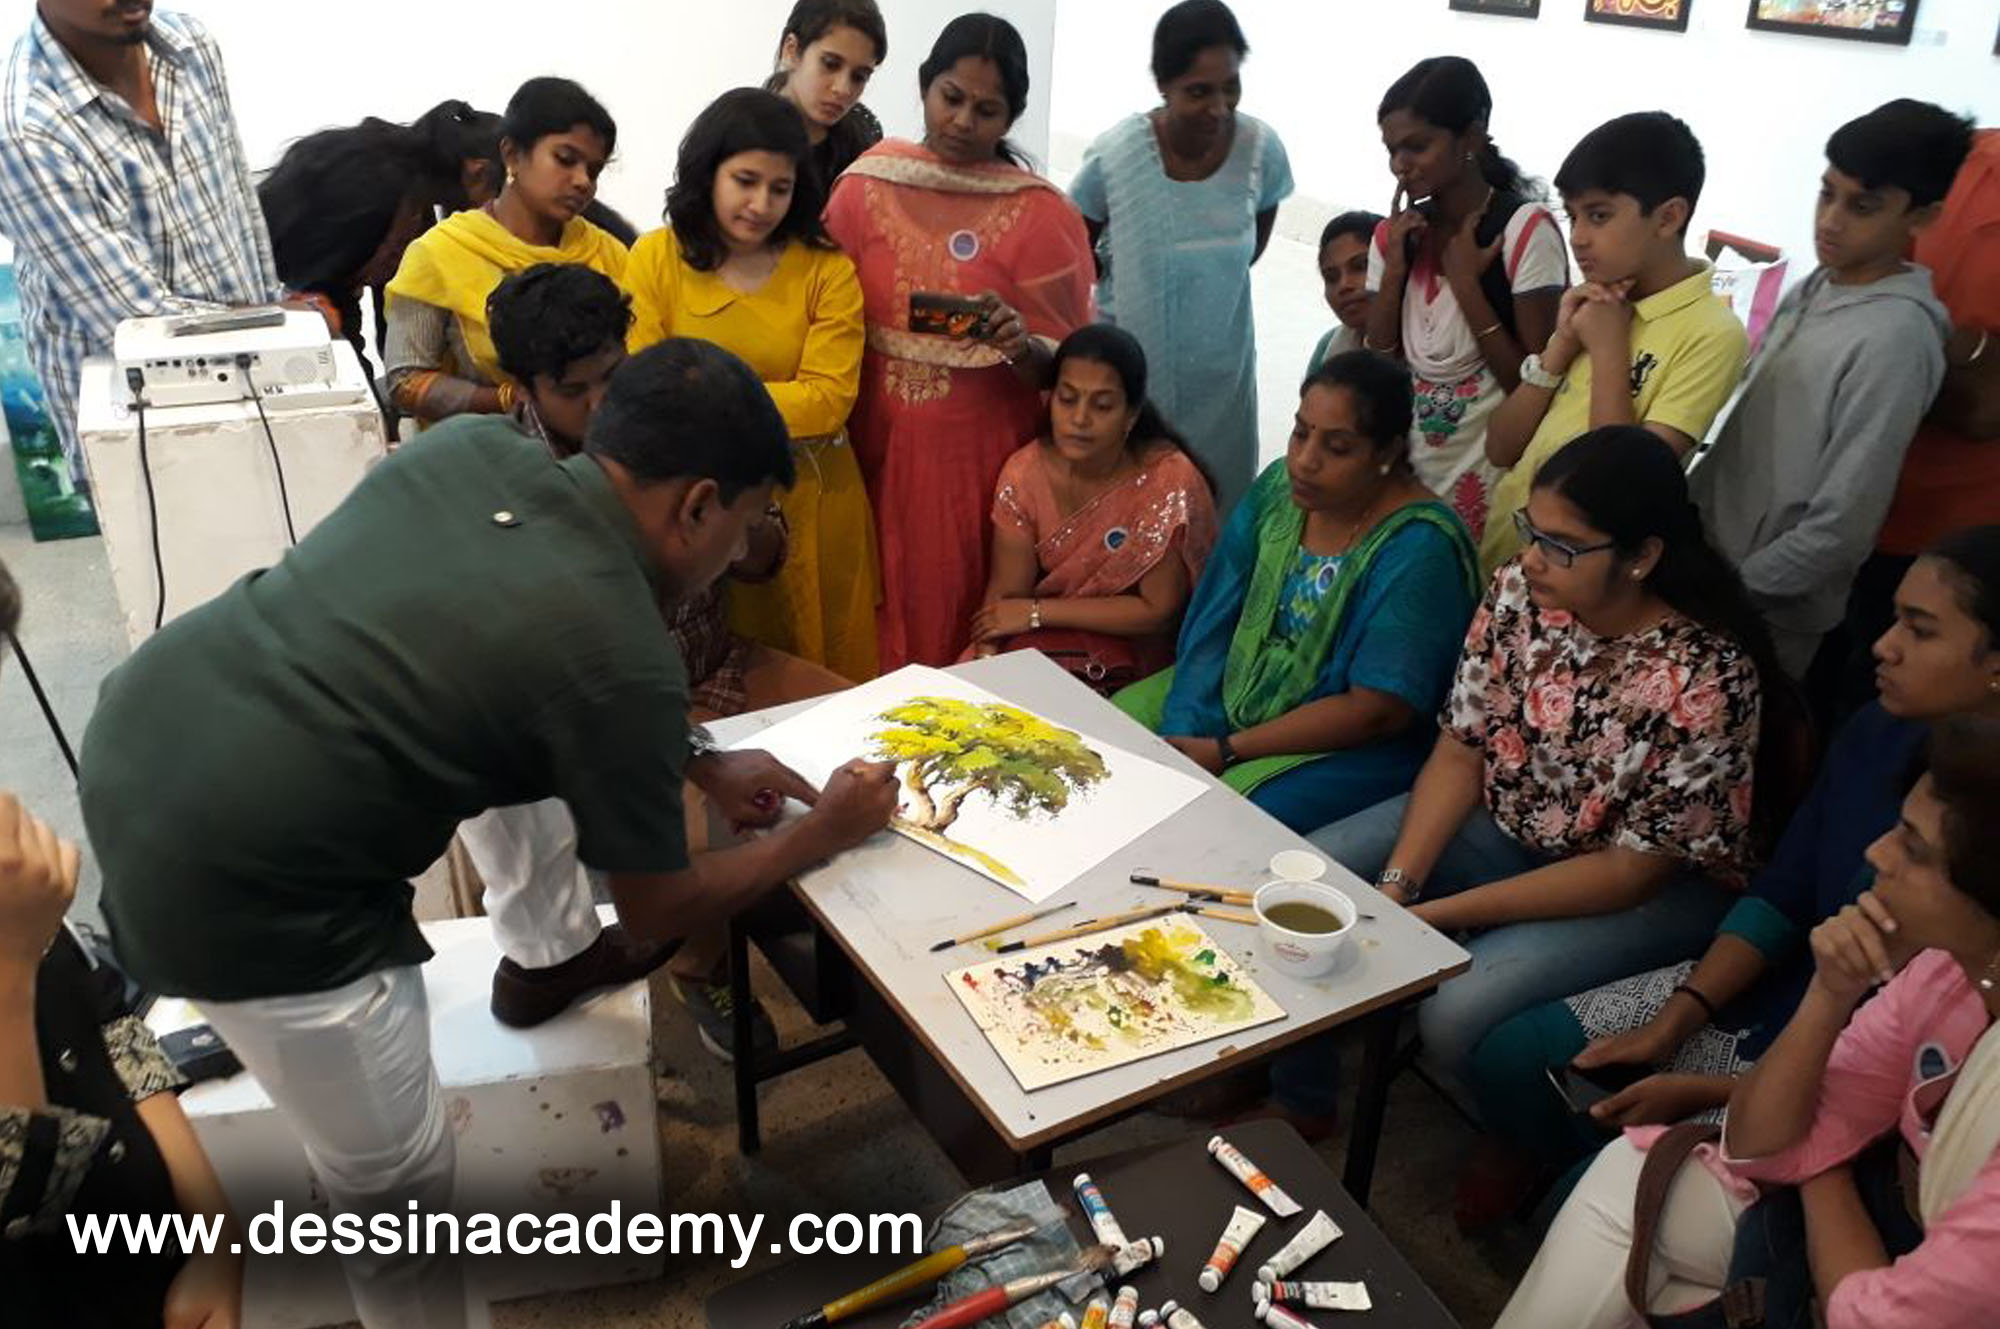 Dessin School of arts Event Gallery 6, Drawing Coaching for adults in AdhanurMom s Care Play School